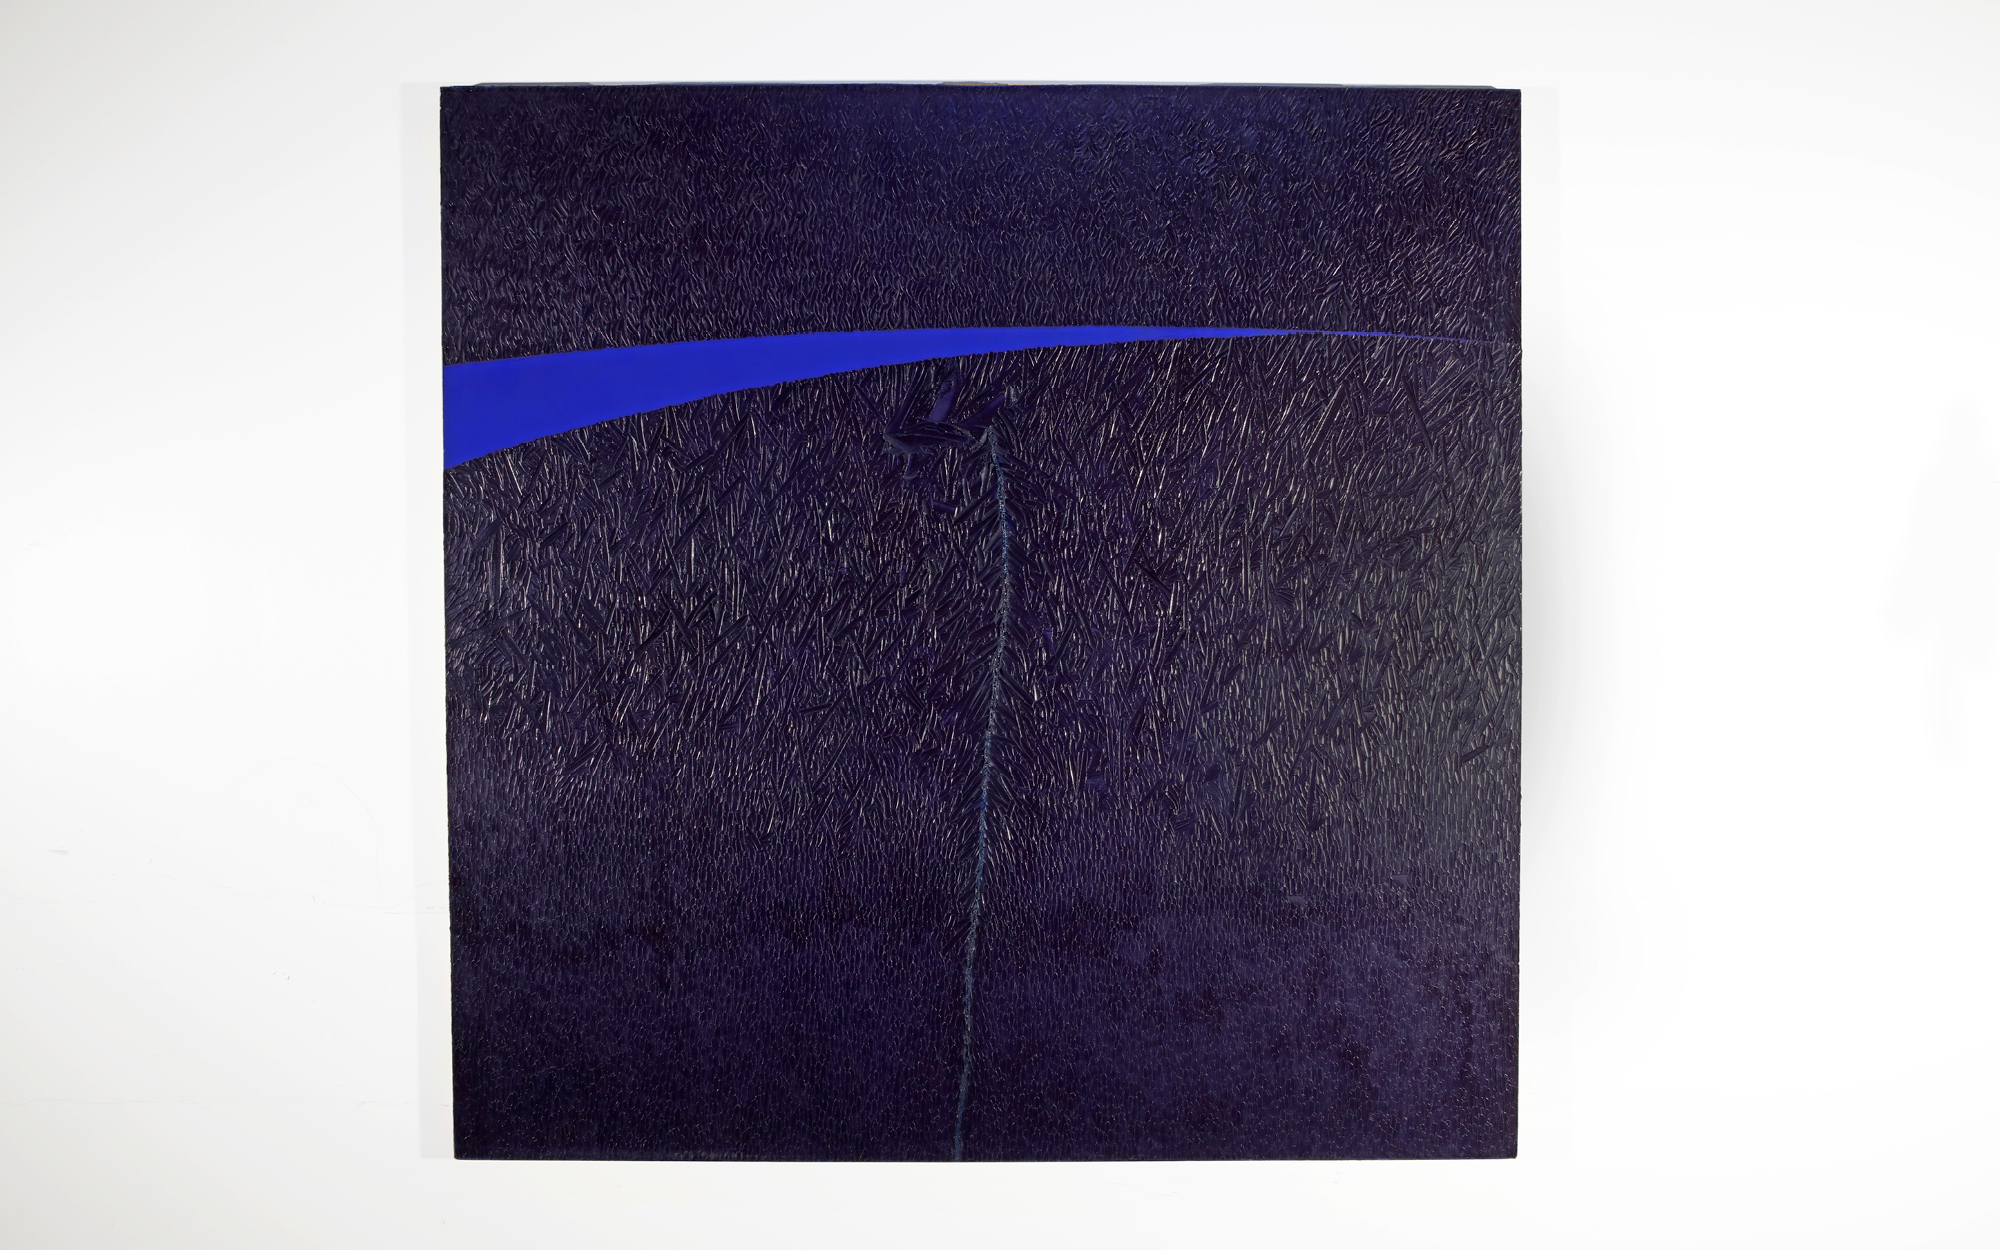 David Budd, Z-6, 1974, Oil on canvas, 72 x 72 in., Collection of Ringlijng College of Art and Design, Photo: Rich Schineller